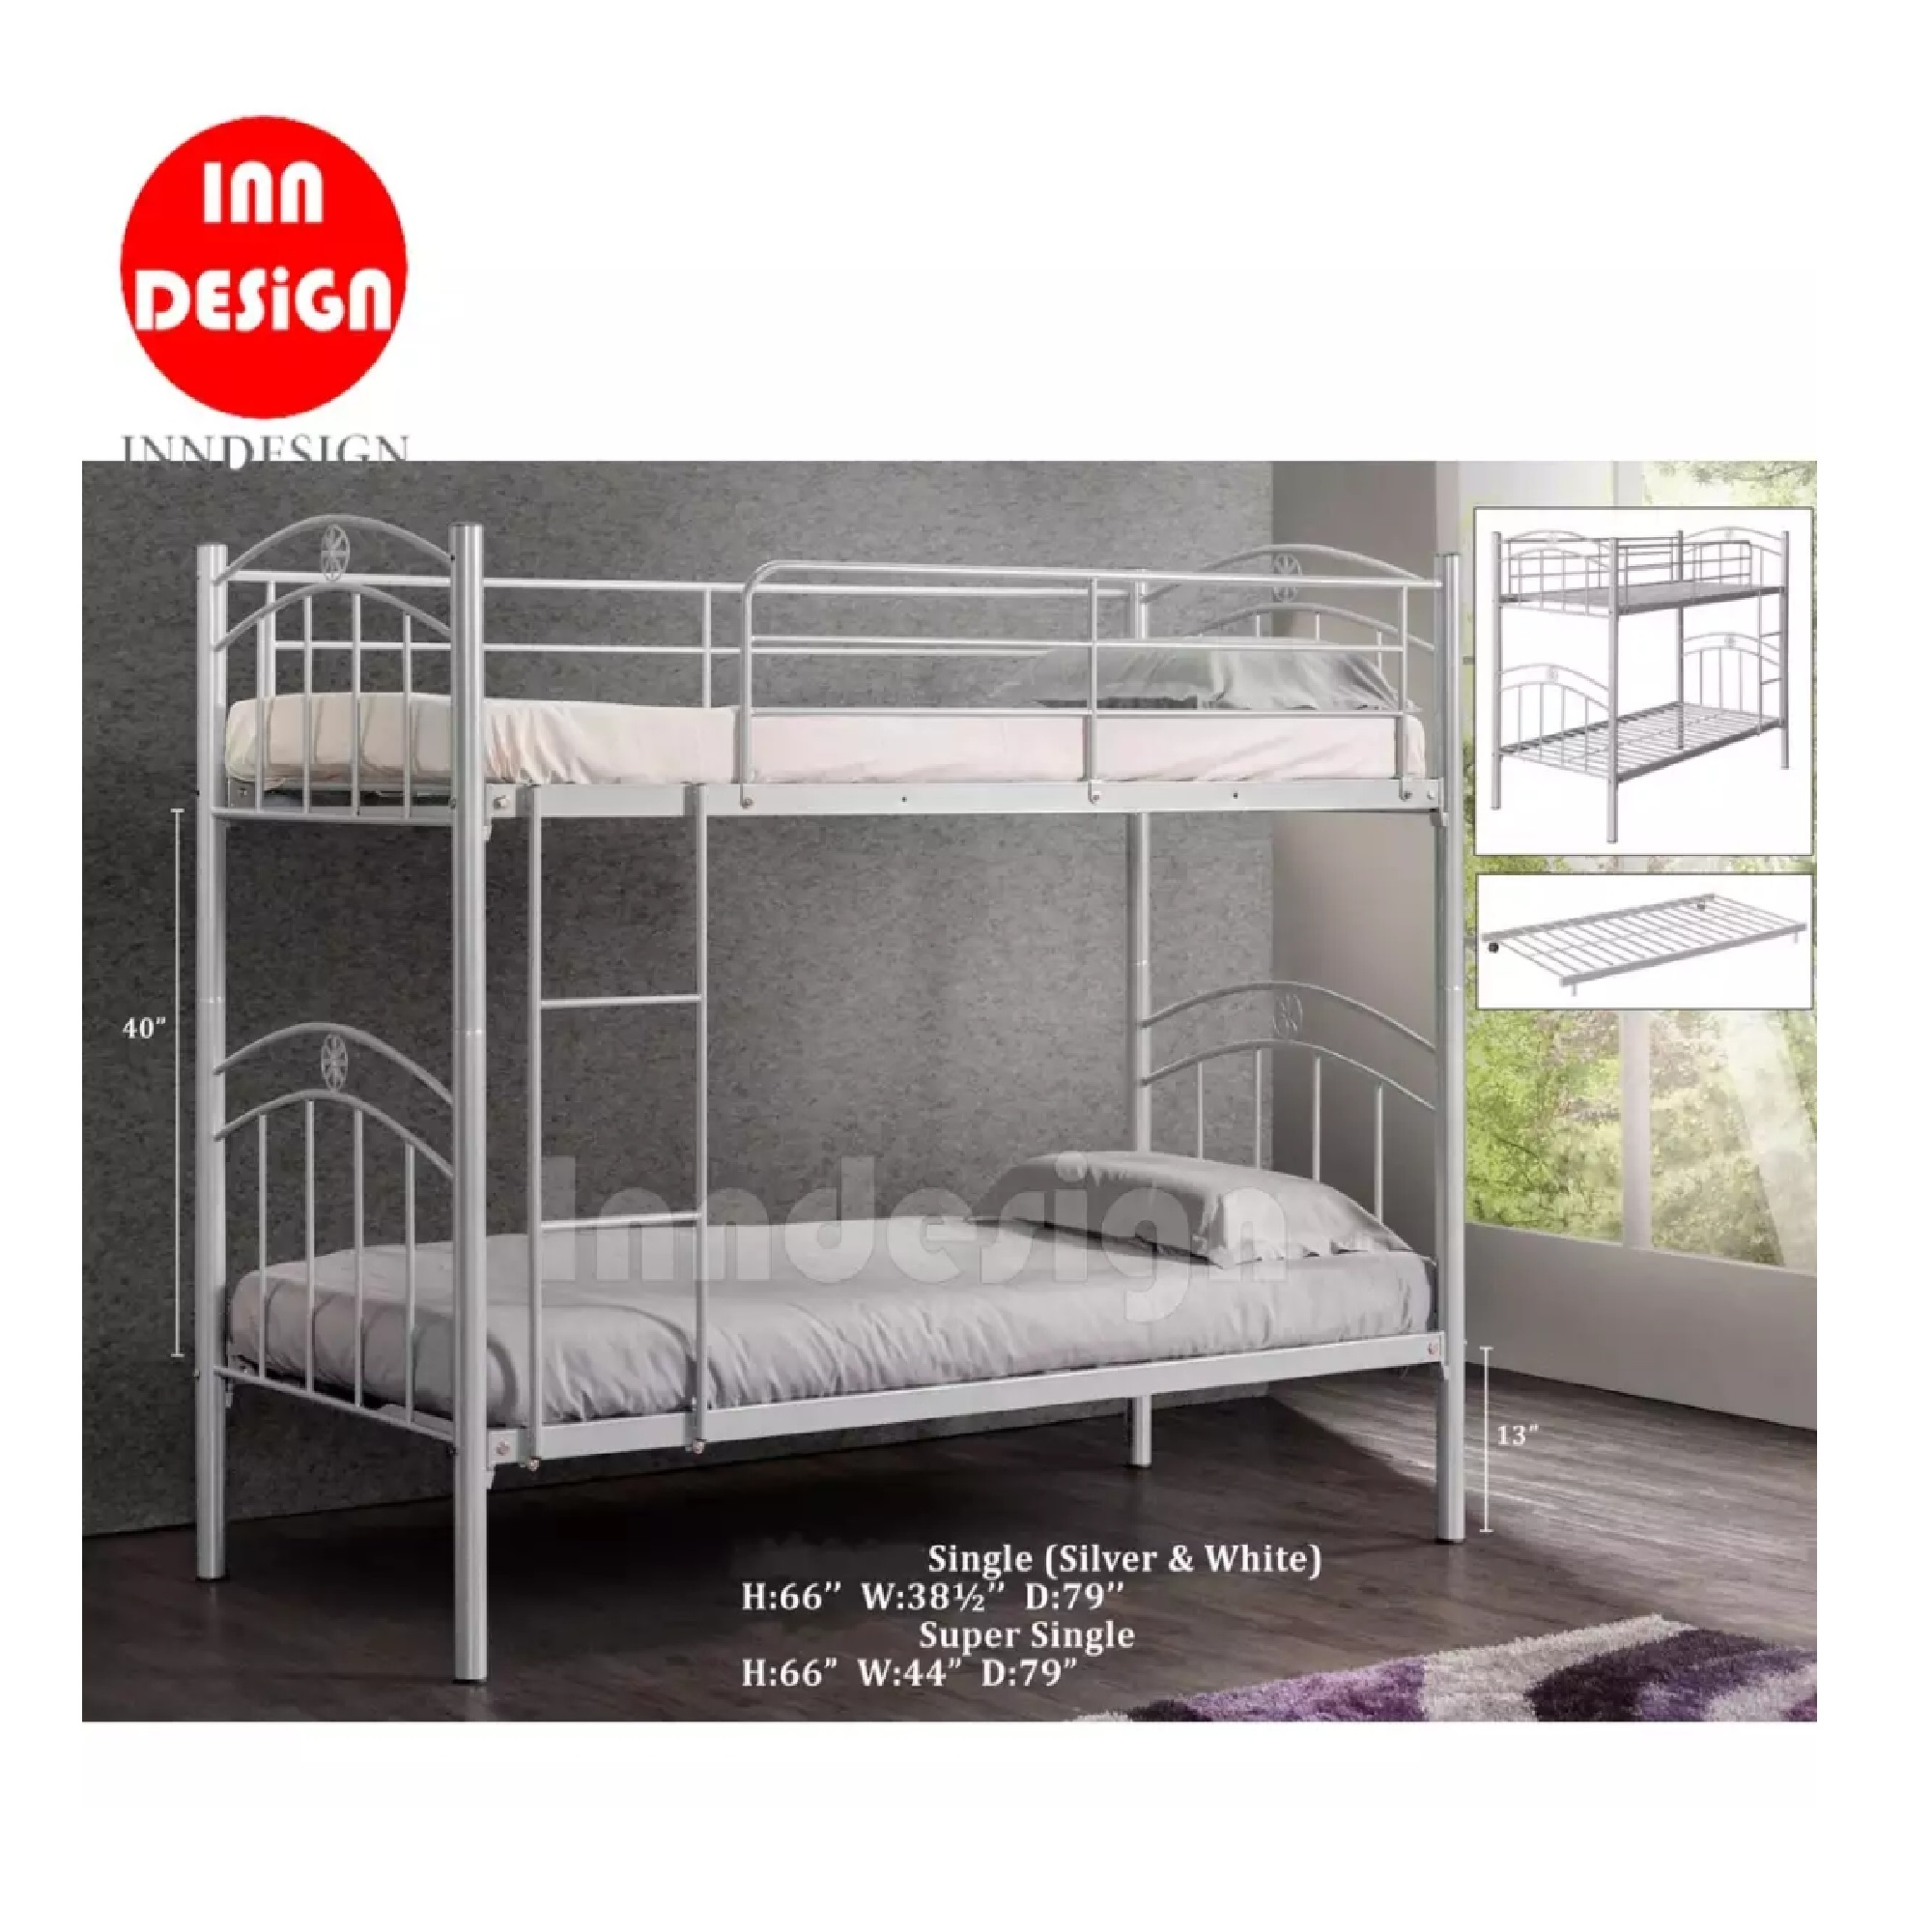 Double Deck Bed Single Metal Bed / Metal Bed Frame (Silver)